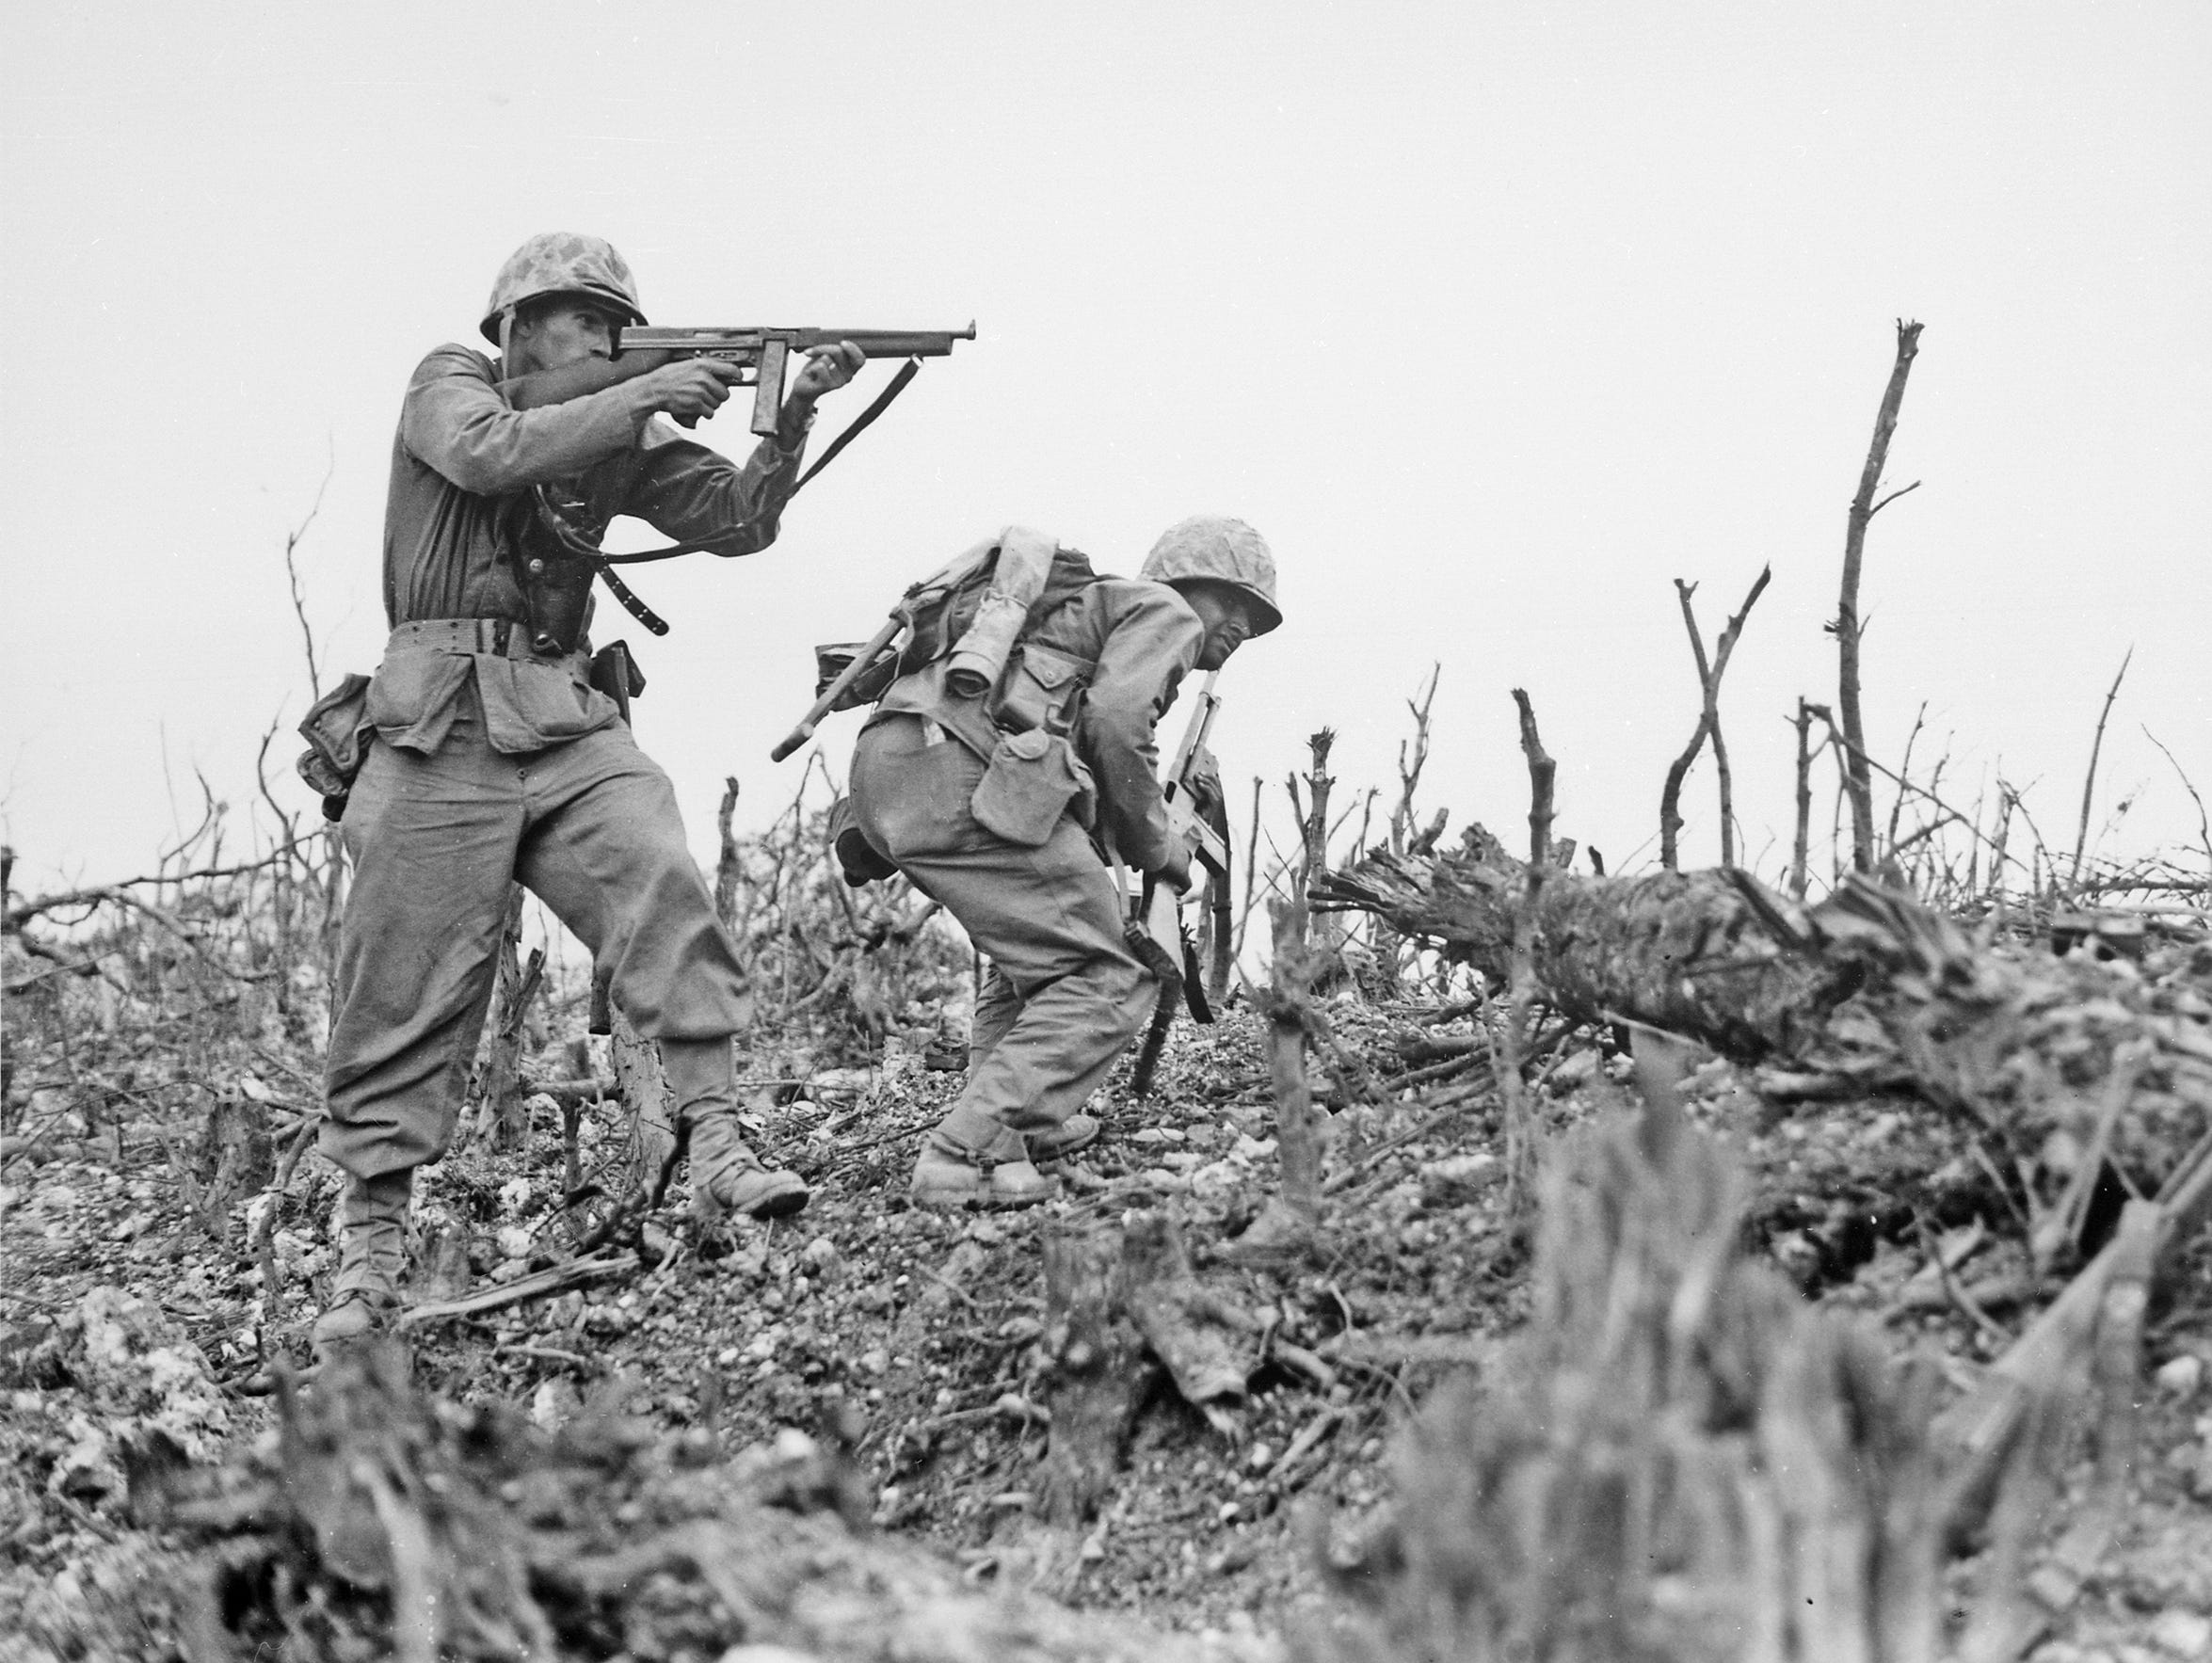 A U.S. Marine from the 2nd Battalion, 1st Marines on